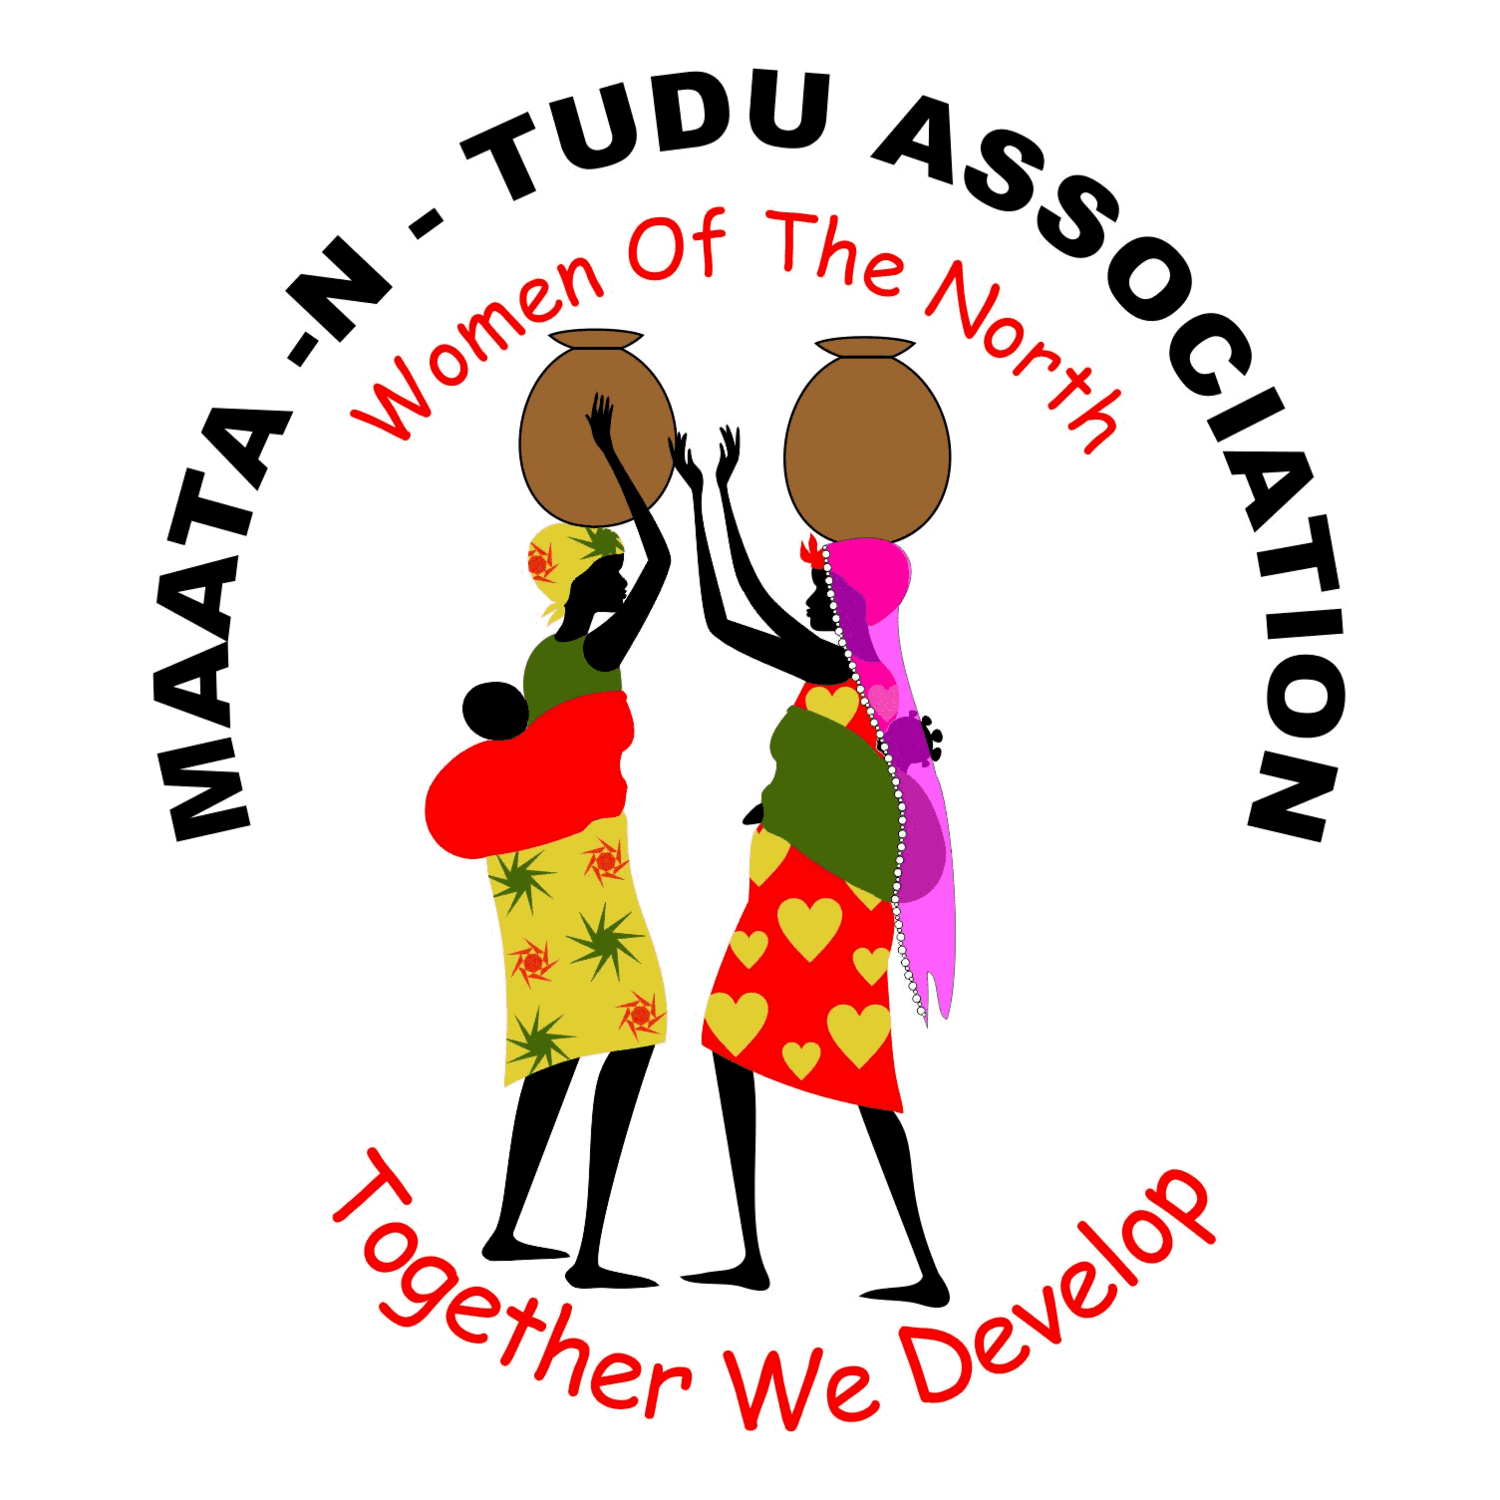 Maata-N-Tudu Association